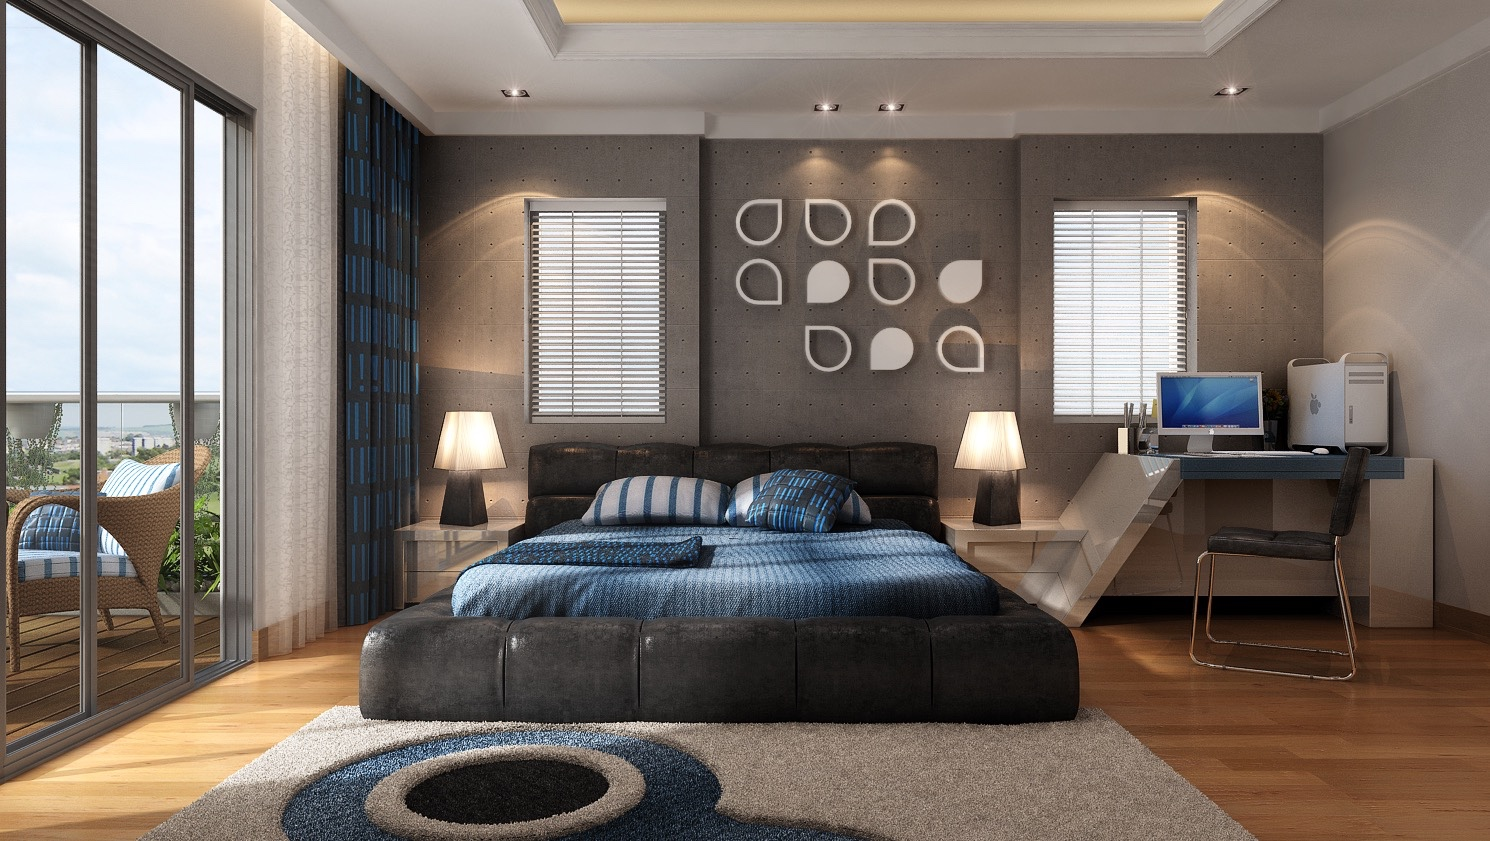 21 cool bedrooms for clean and simple design inspiration - Cool Bedroom Design Ideas